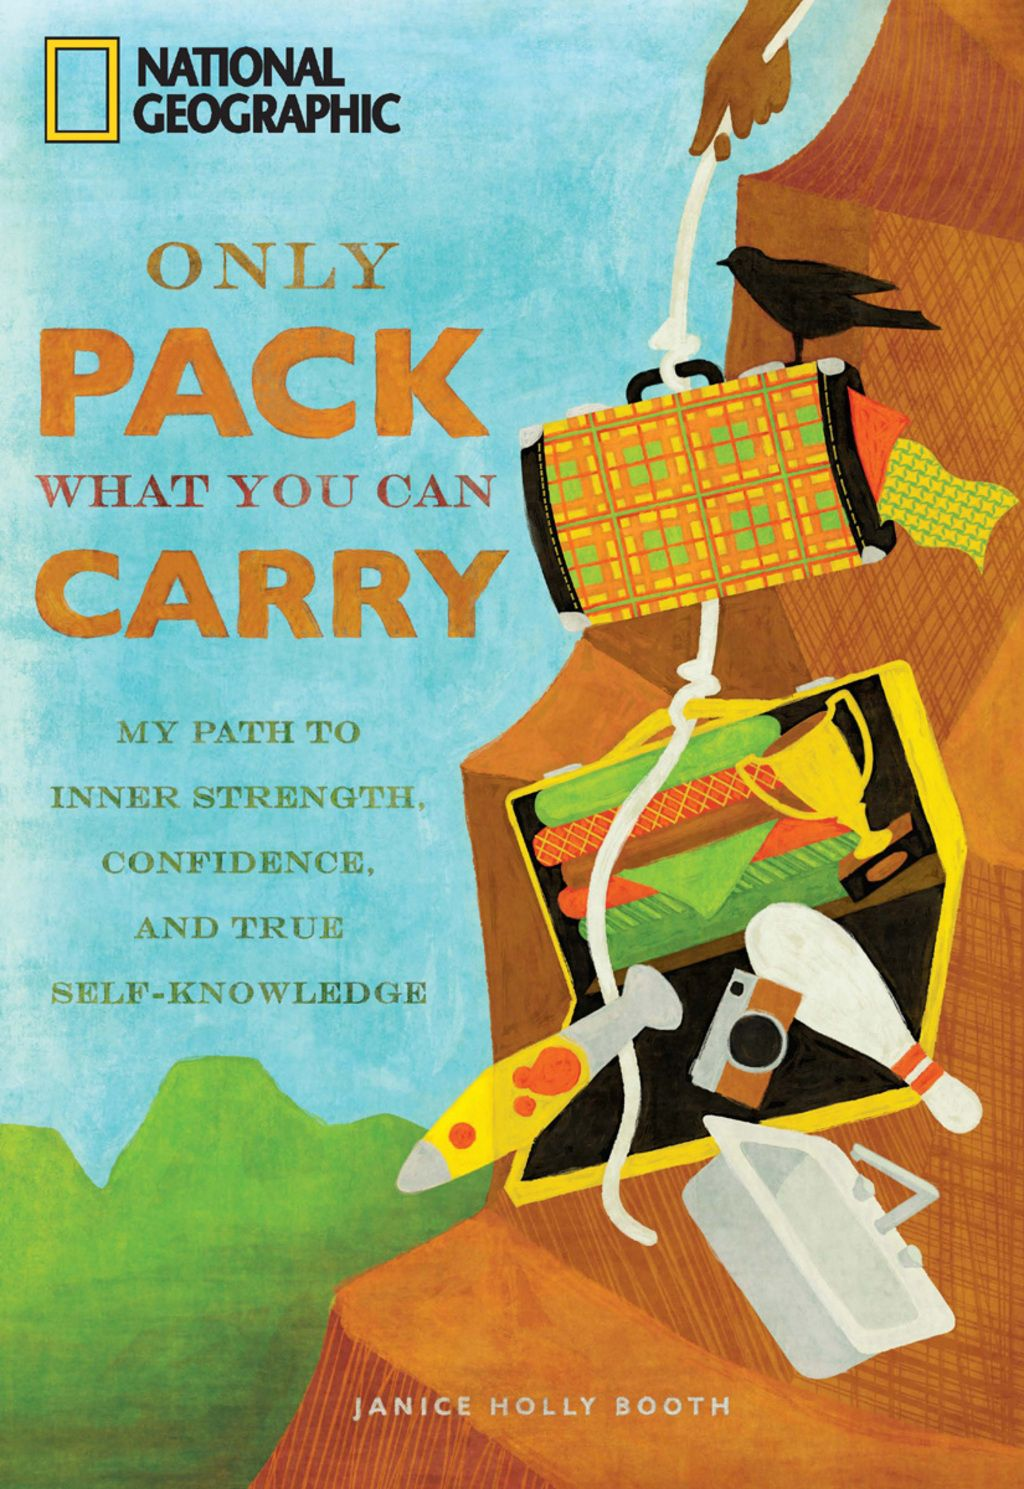 Only Pack What You Can Carry (eBook) Inner strength